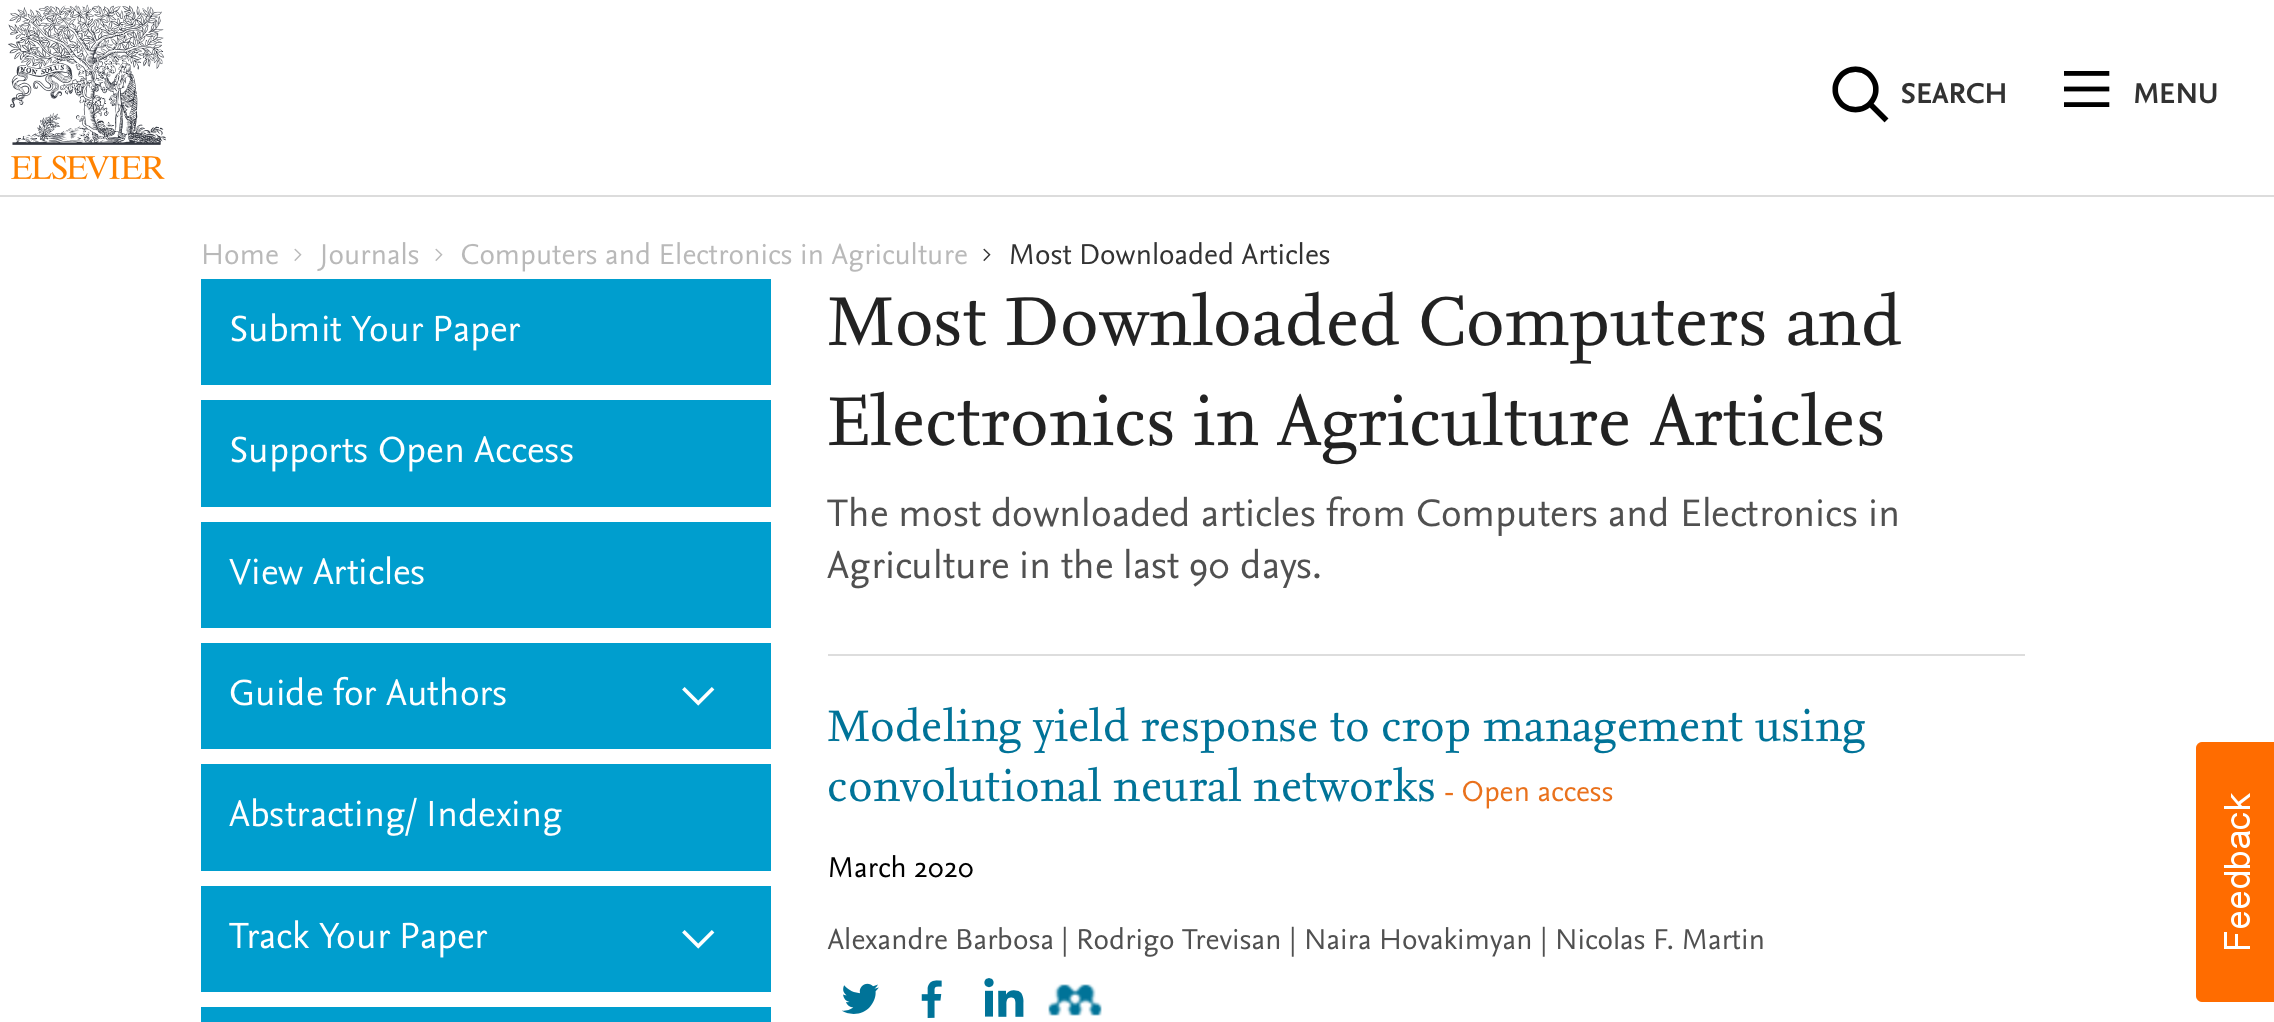 Our article appears among the most downloaded articles!